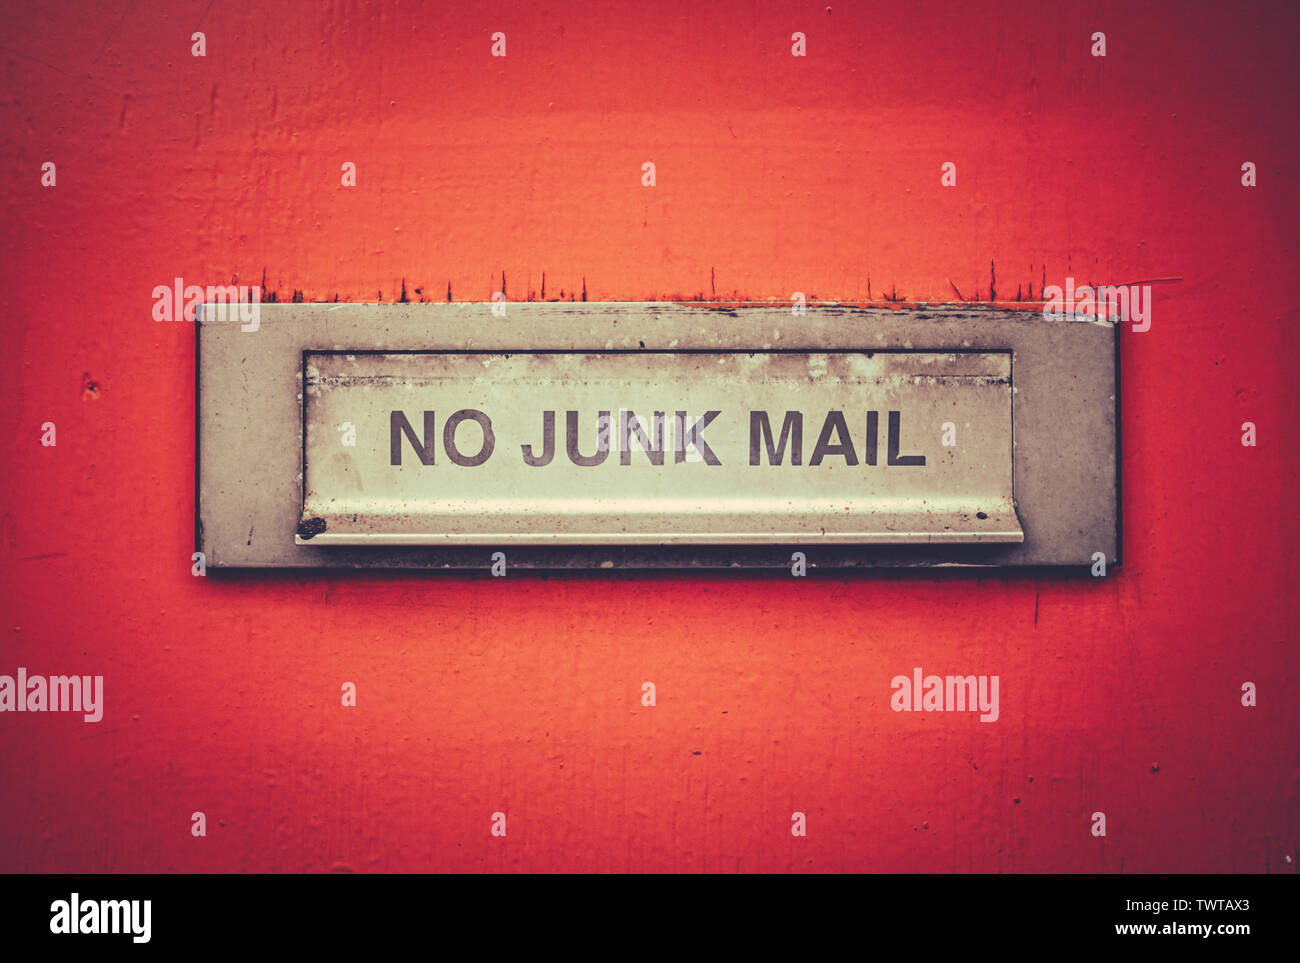 A Letterbox On A Grungy Orange Door With A No Junk Mail Sign Stock Photo